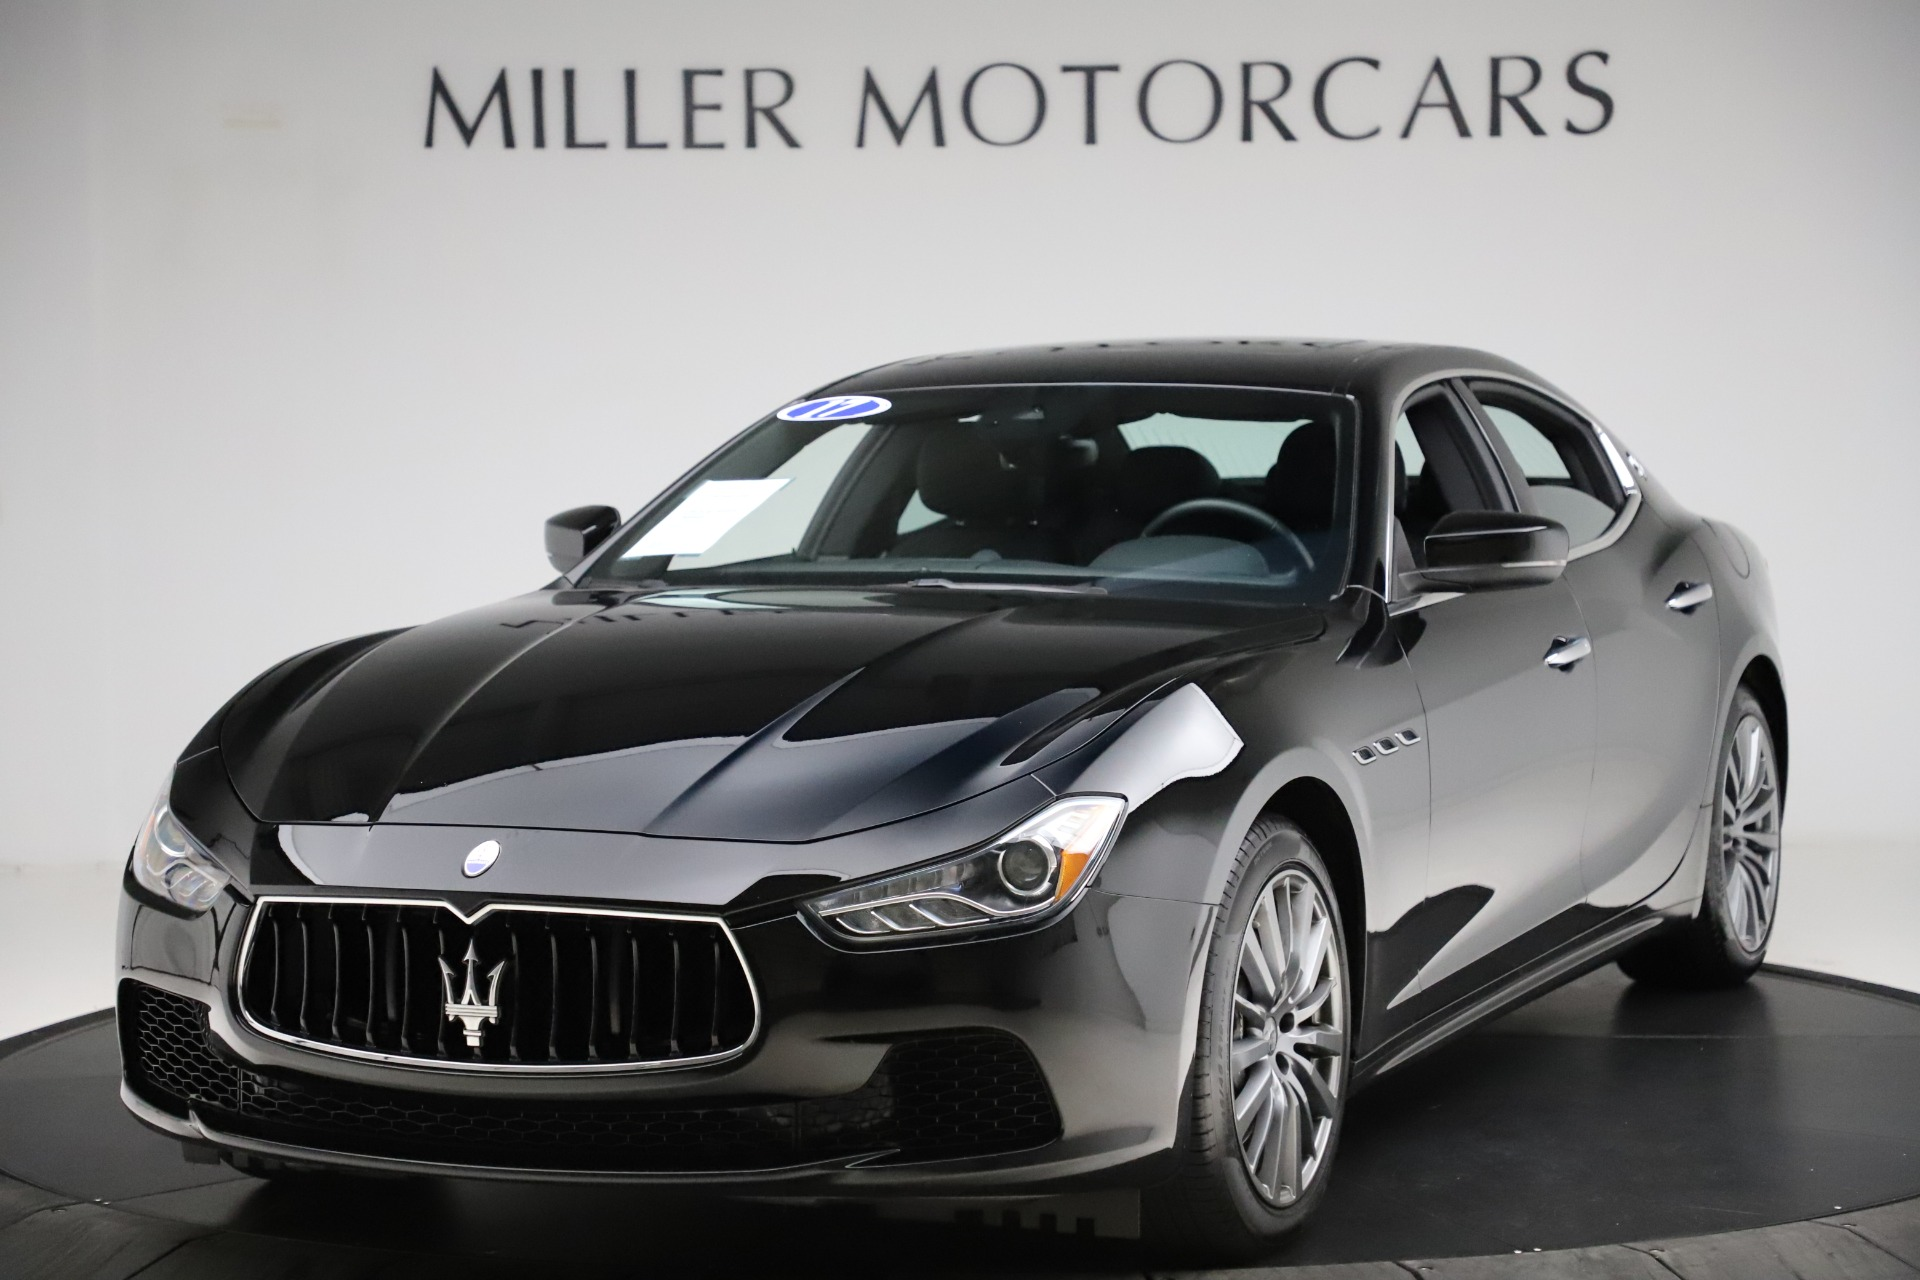 Used 2017 Maserati Ghibli S Q4 for sale $42,900 at Pagani of Greenwich in Greenwich CT 06830 1